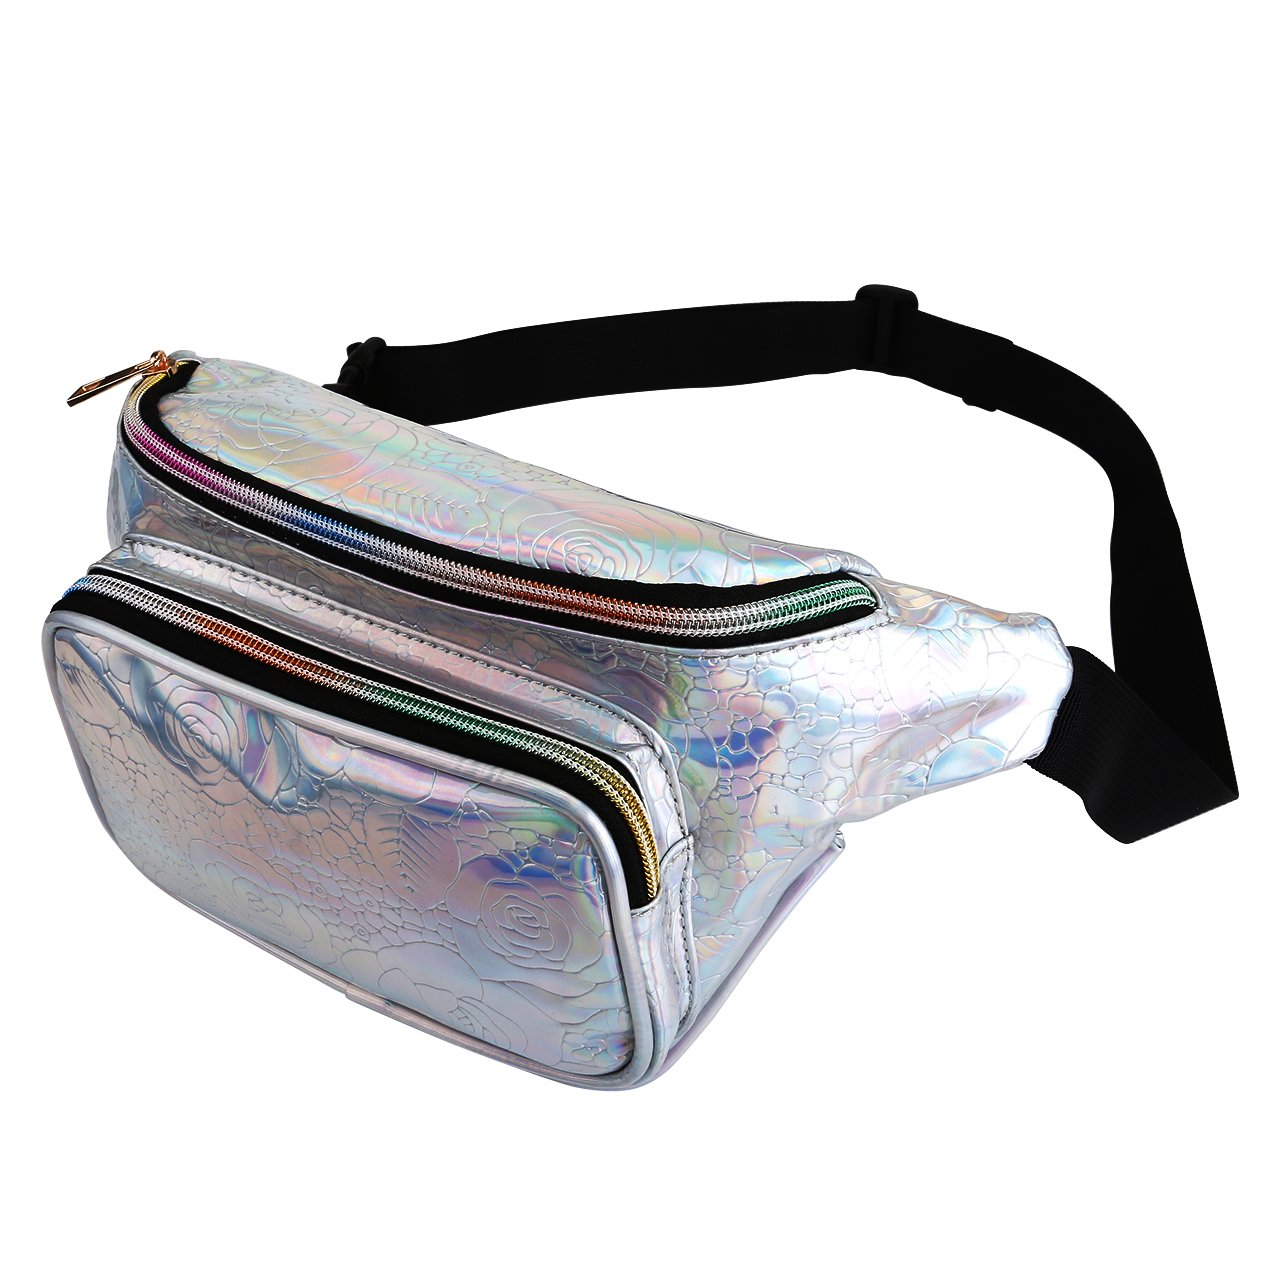 Faleto Fanny Pack Holographic, PU Waterproof Bum Bags Wasit Pack for Men Women Travel Running Gym Travel Party (Floral Silver)